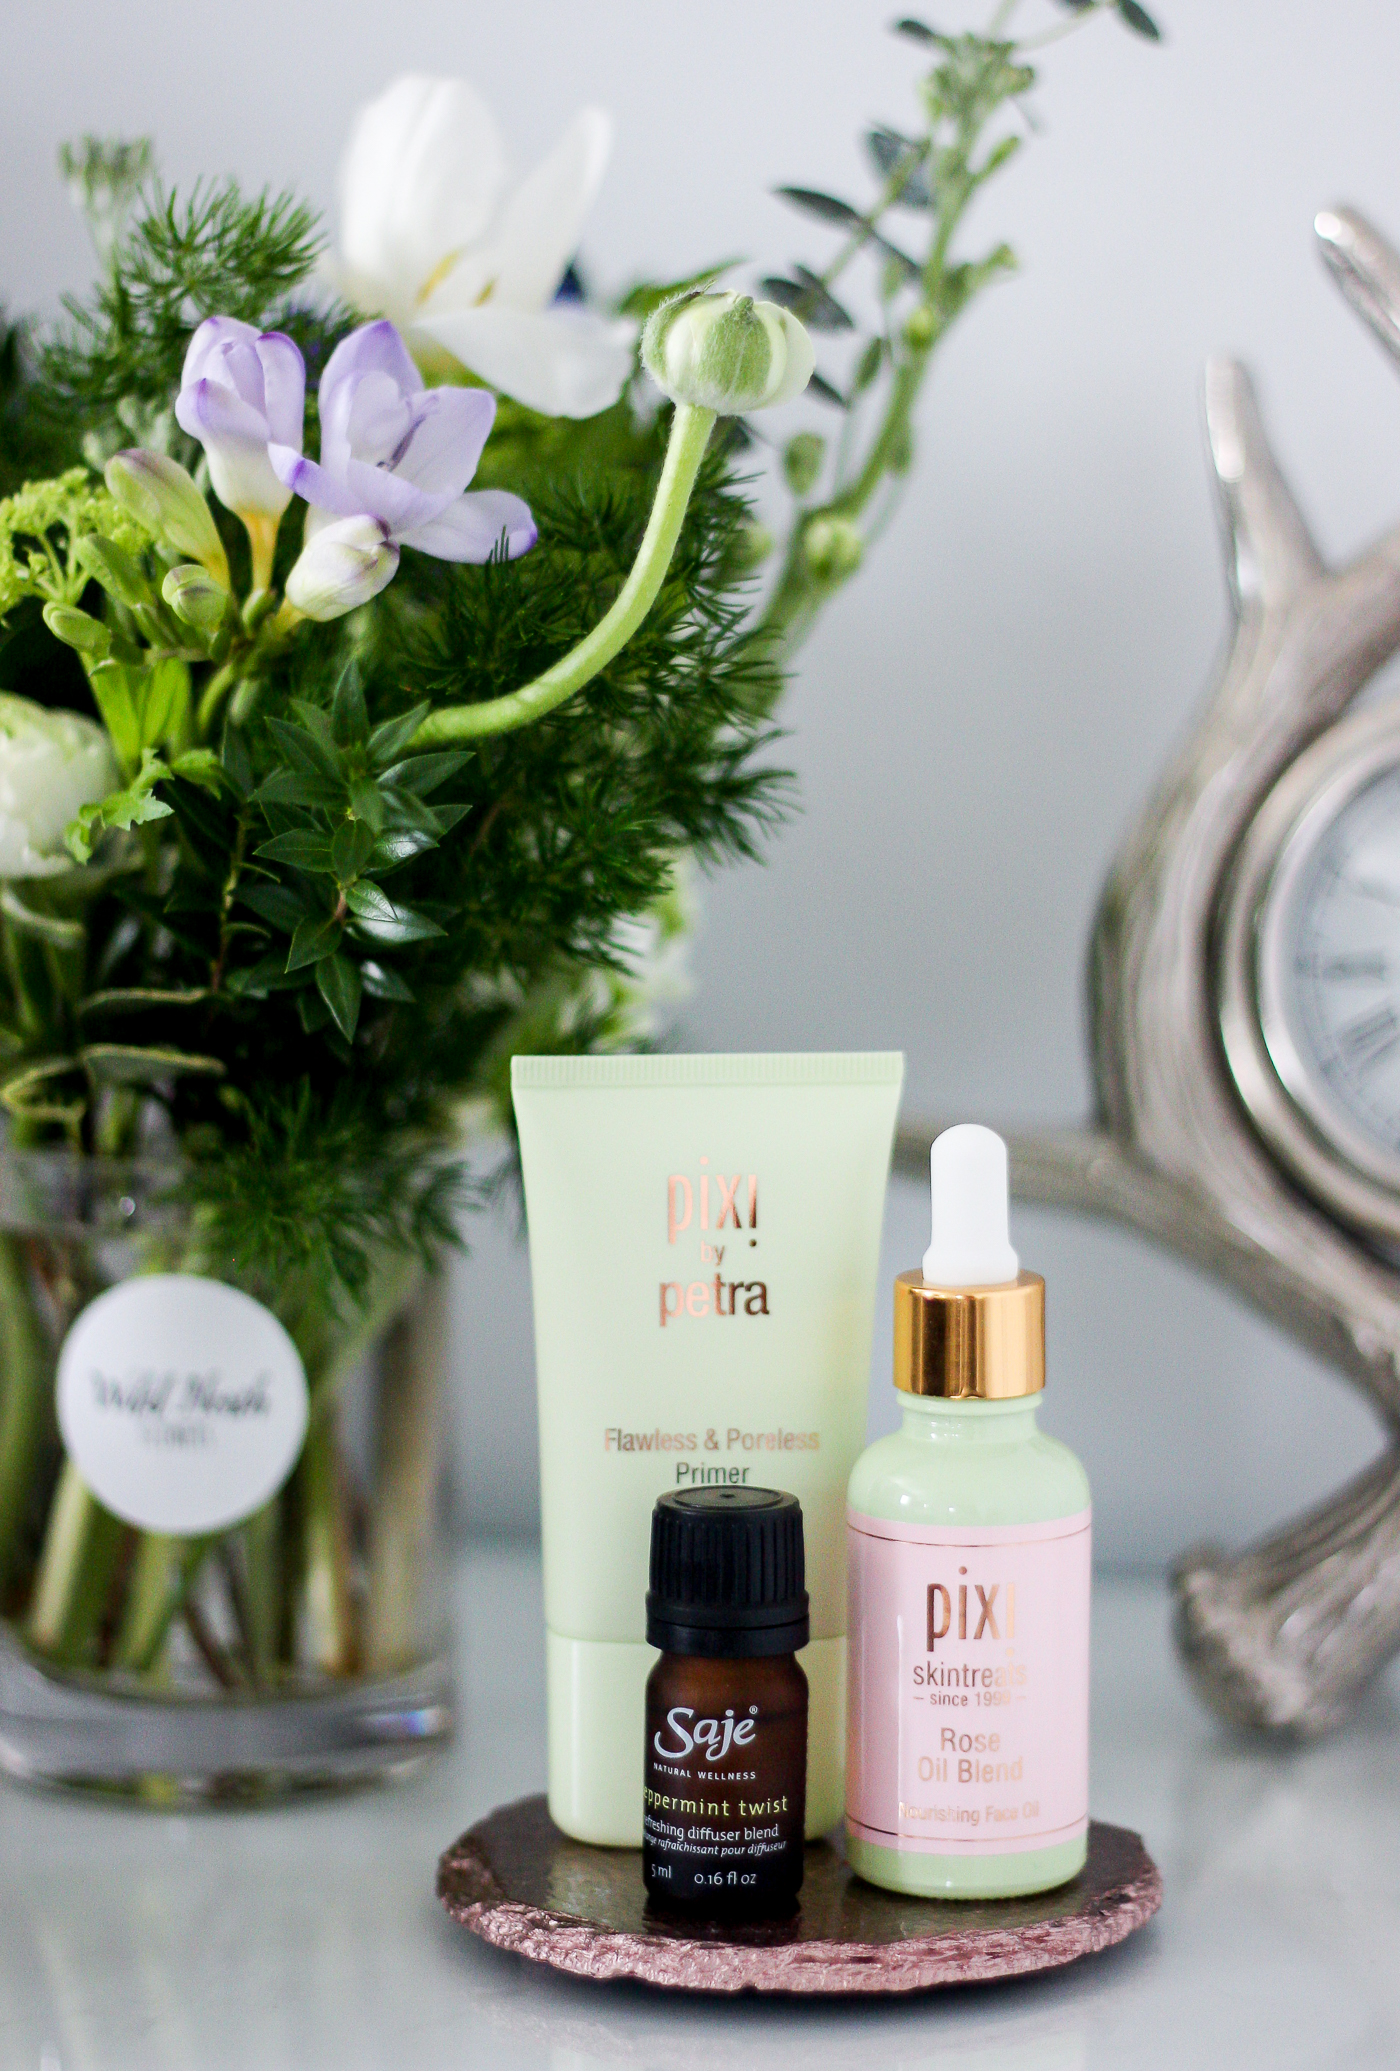 This week's reads, eats and buys, featuring a shot of some of my new favourite beauty products from Pixi by Petra